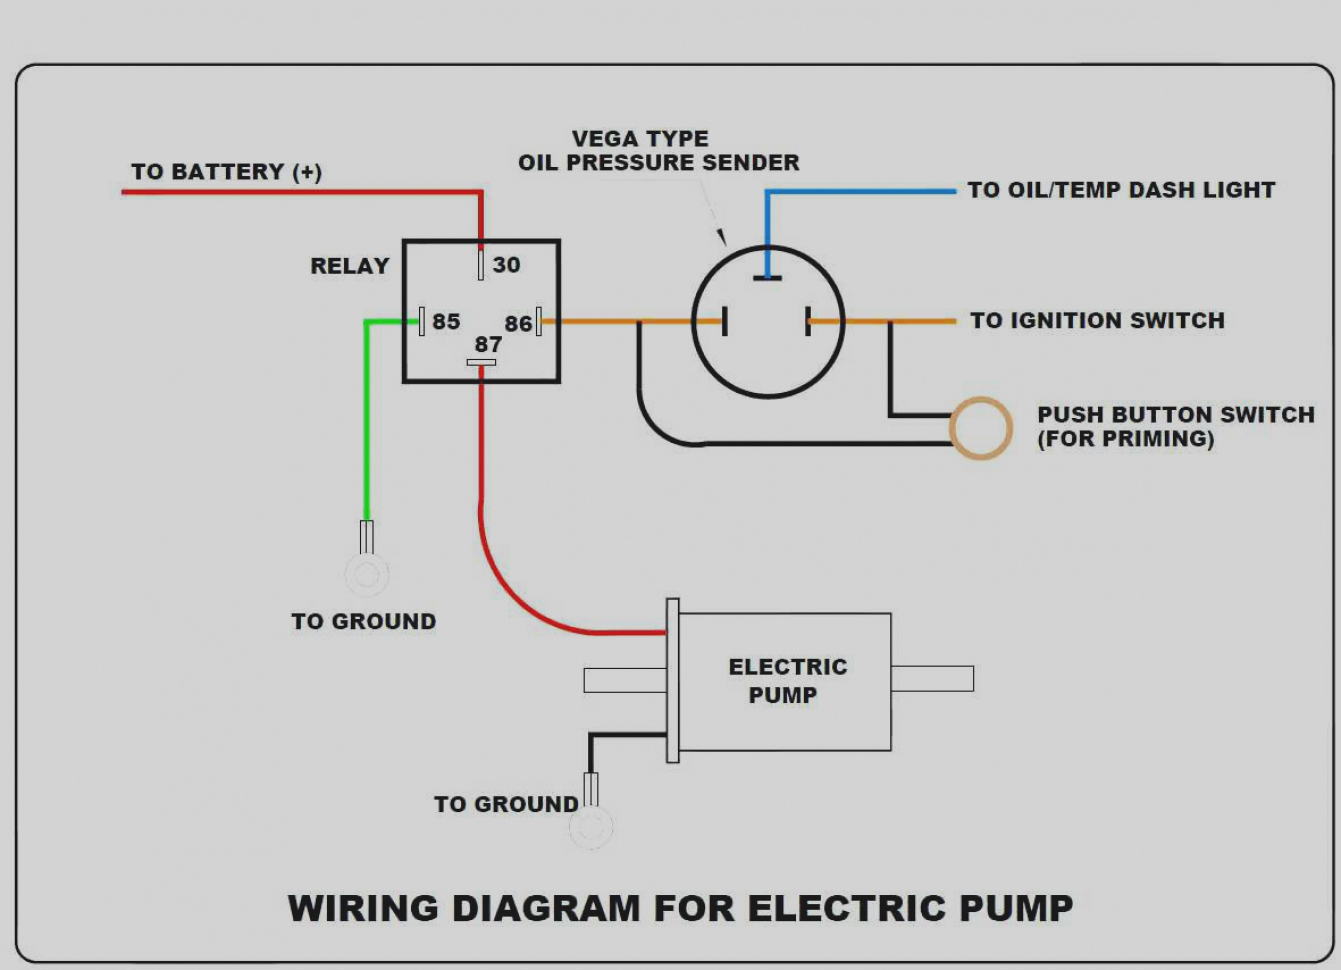 3arr3 Relay Wiring Diagram Download Sample Electric Collection Great Fuel Pump Location Troubleshooting Image 11